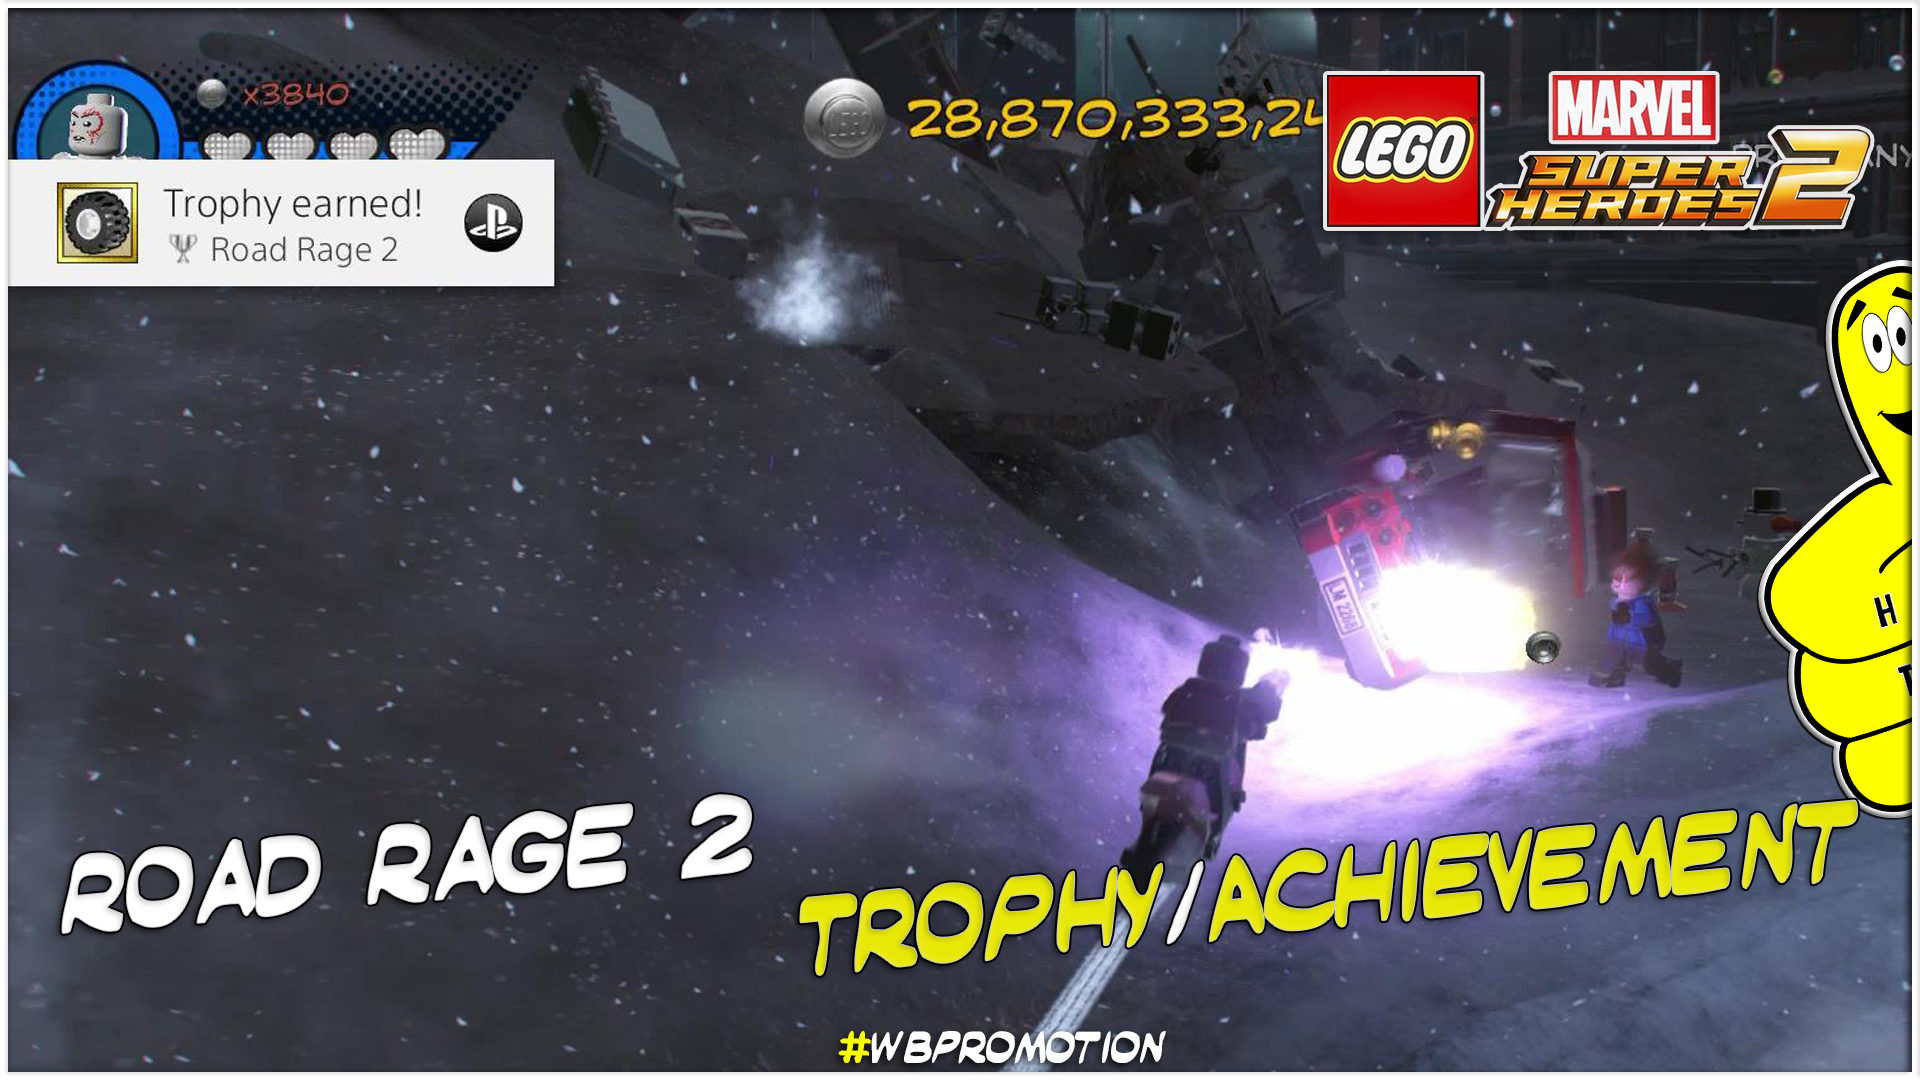 Lego Marvel Superheroes 2: Road Rage 2 Trophy/Achievement – HTG